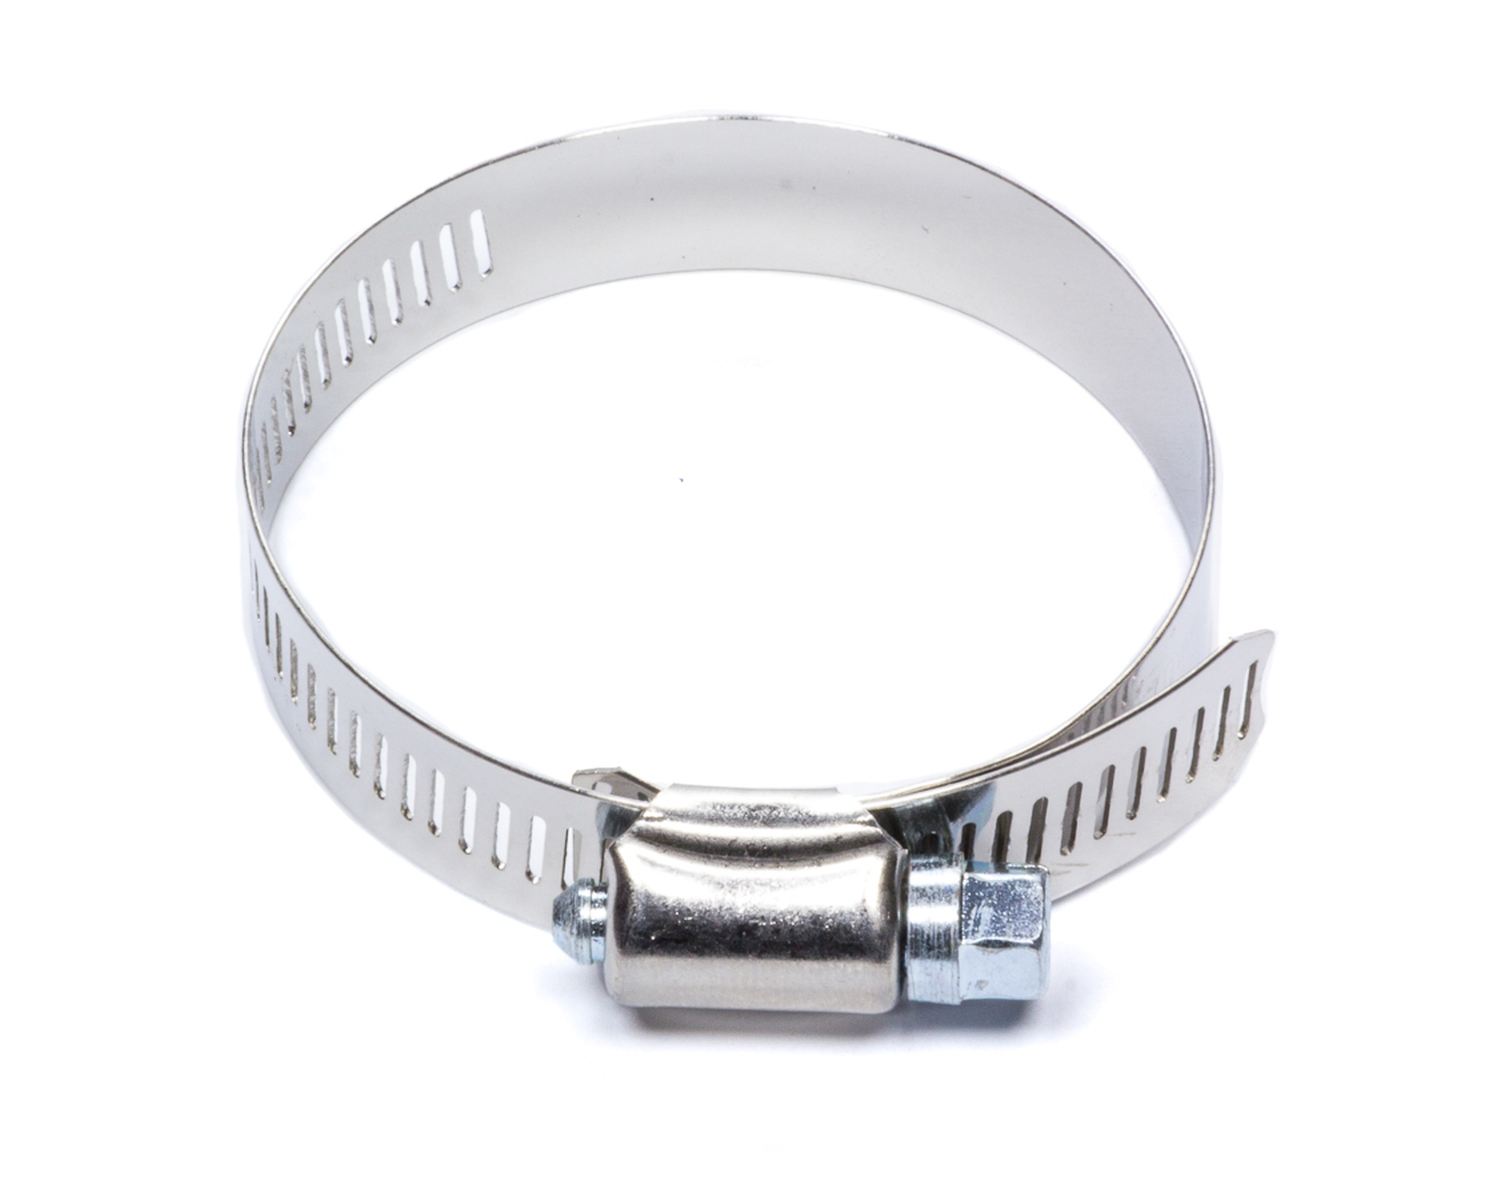 ATP Chemicals & Supplies B36H Hose Clamp 1-13/16in to 2-3/4in - Free ship